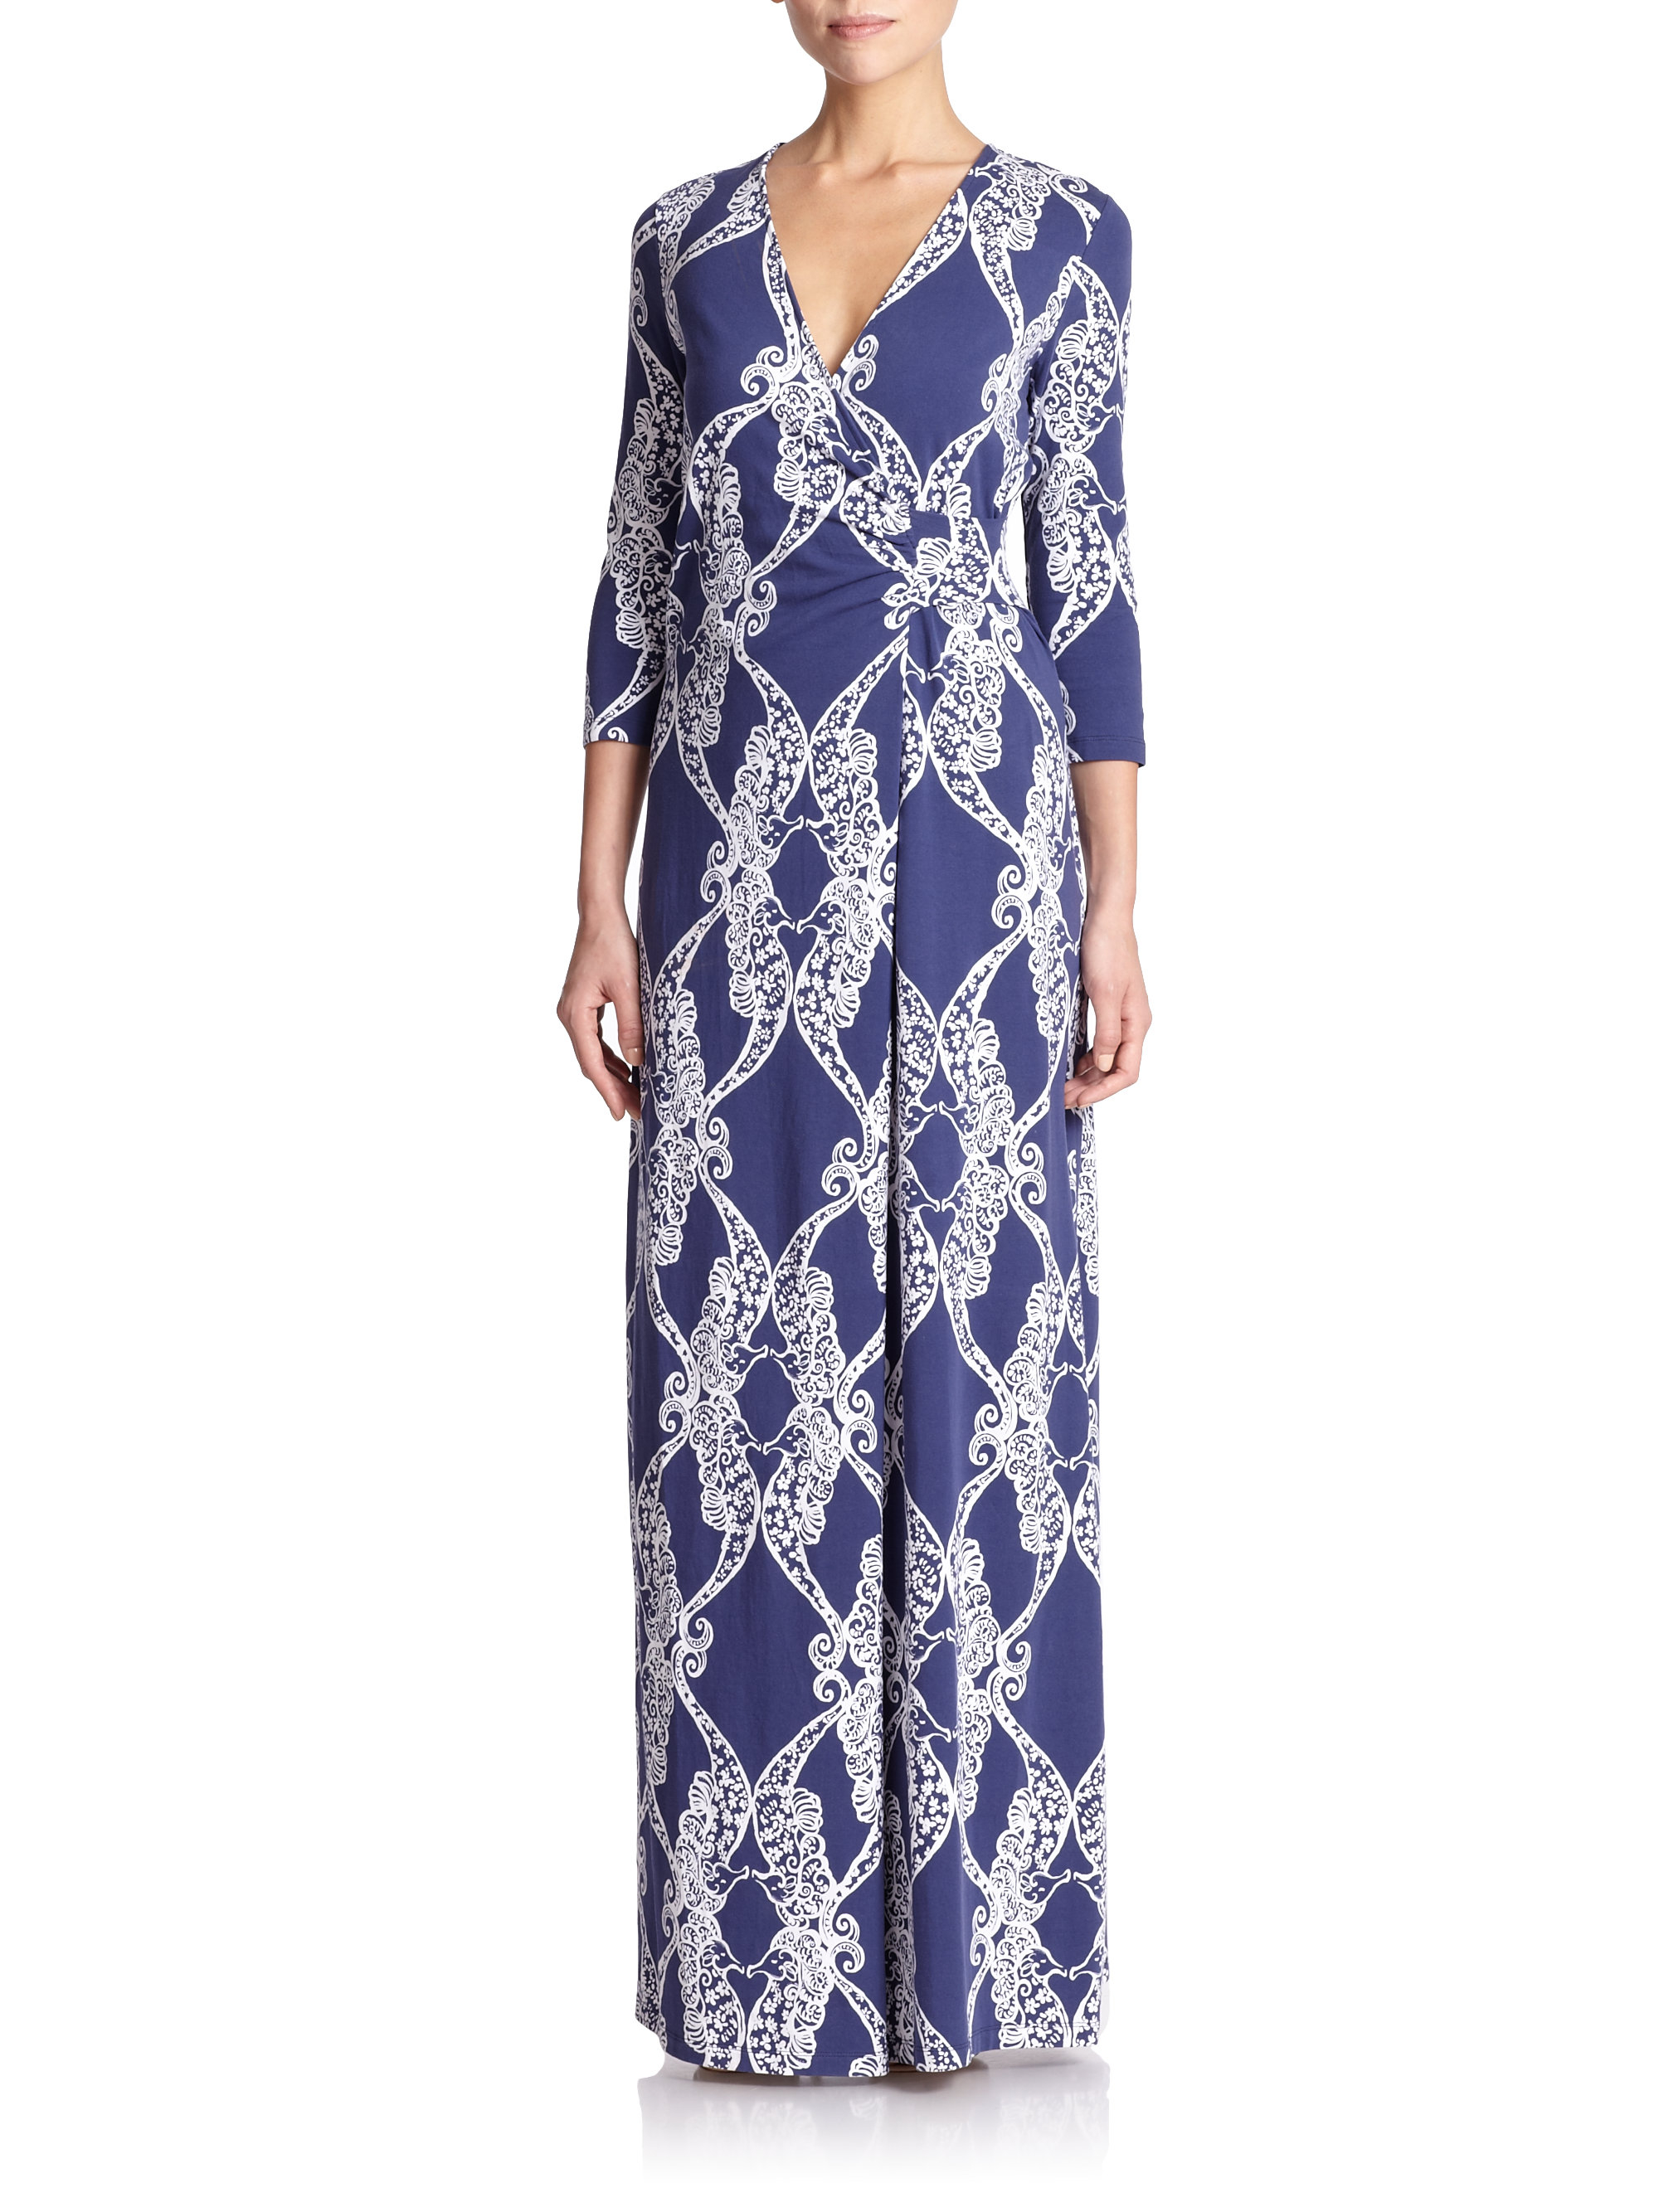 Lilly Pulitzer Yvette Maxi Dress In Blue Lyst